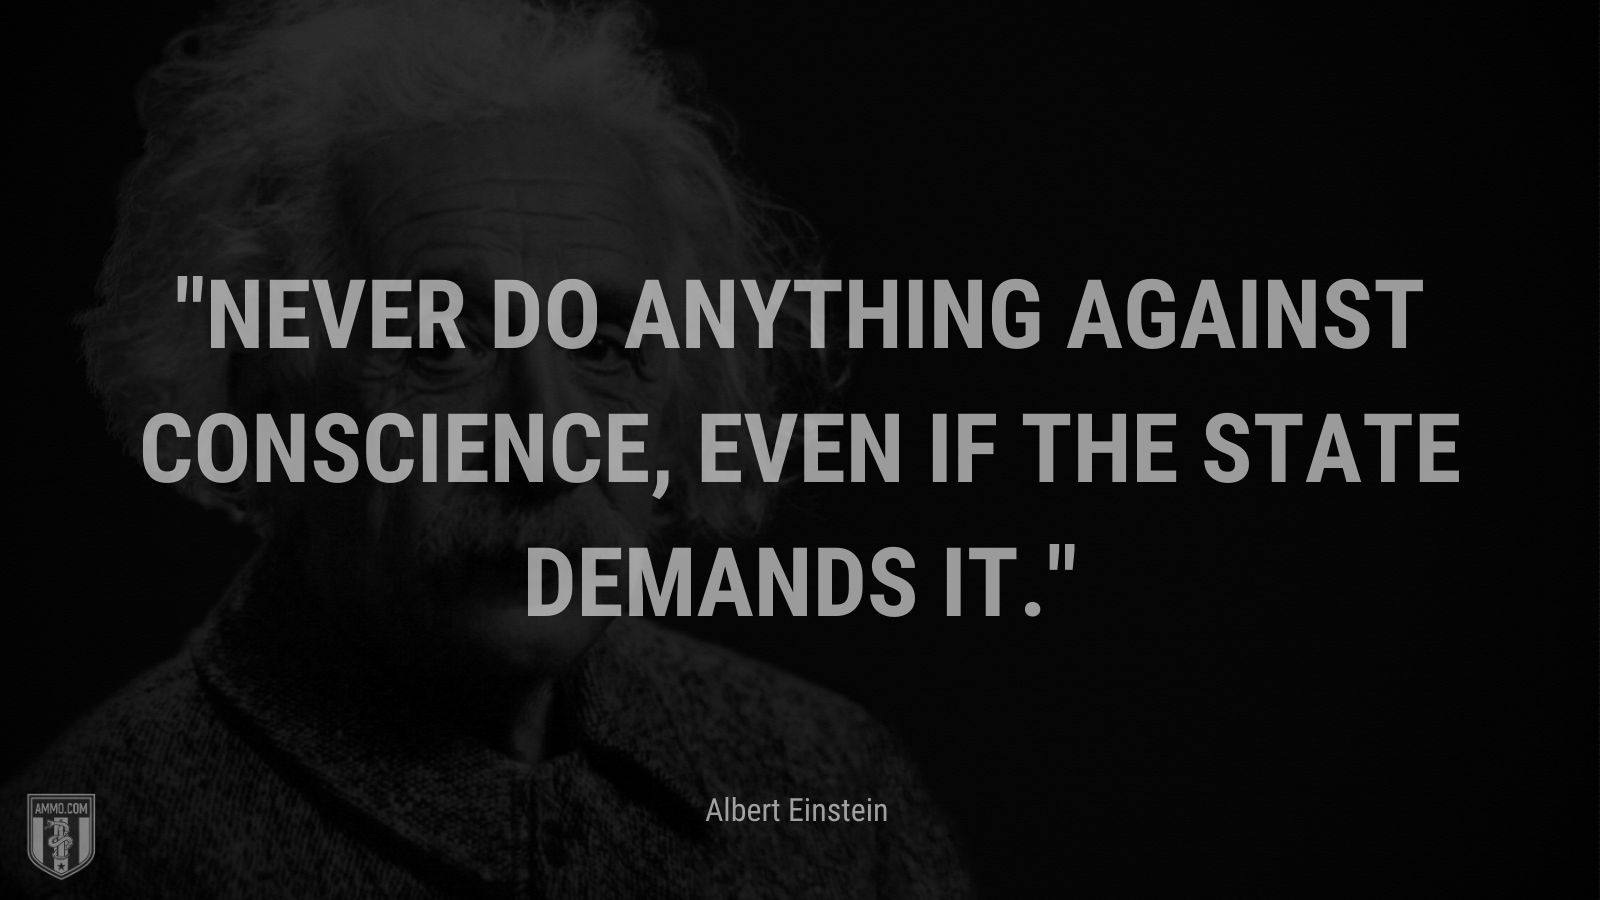 """""""Never do anything against conscience, even if the state demands it. - Albert Einstein"""